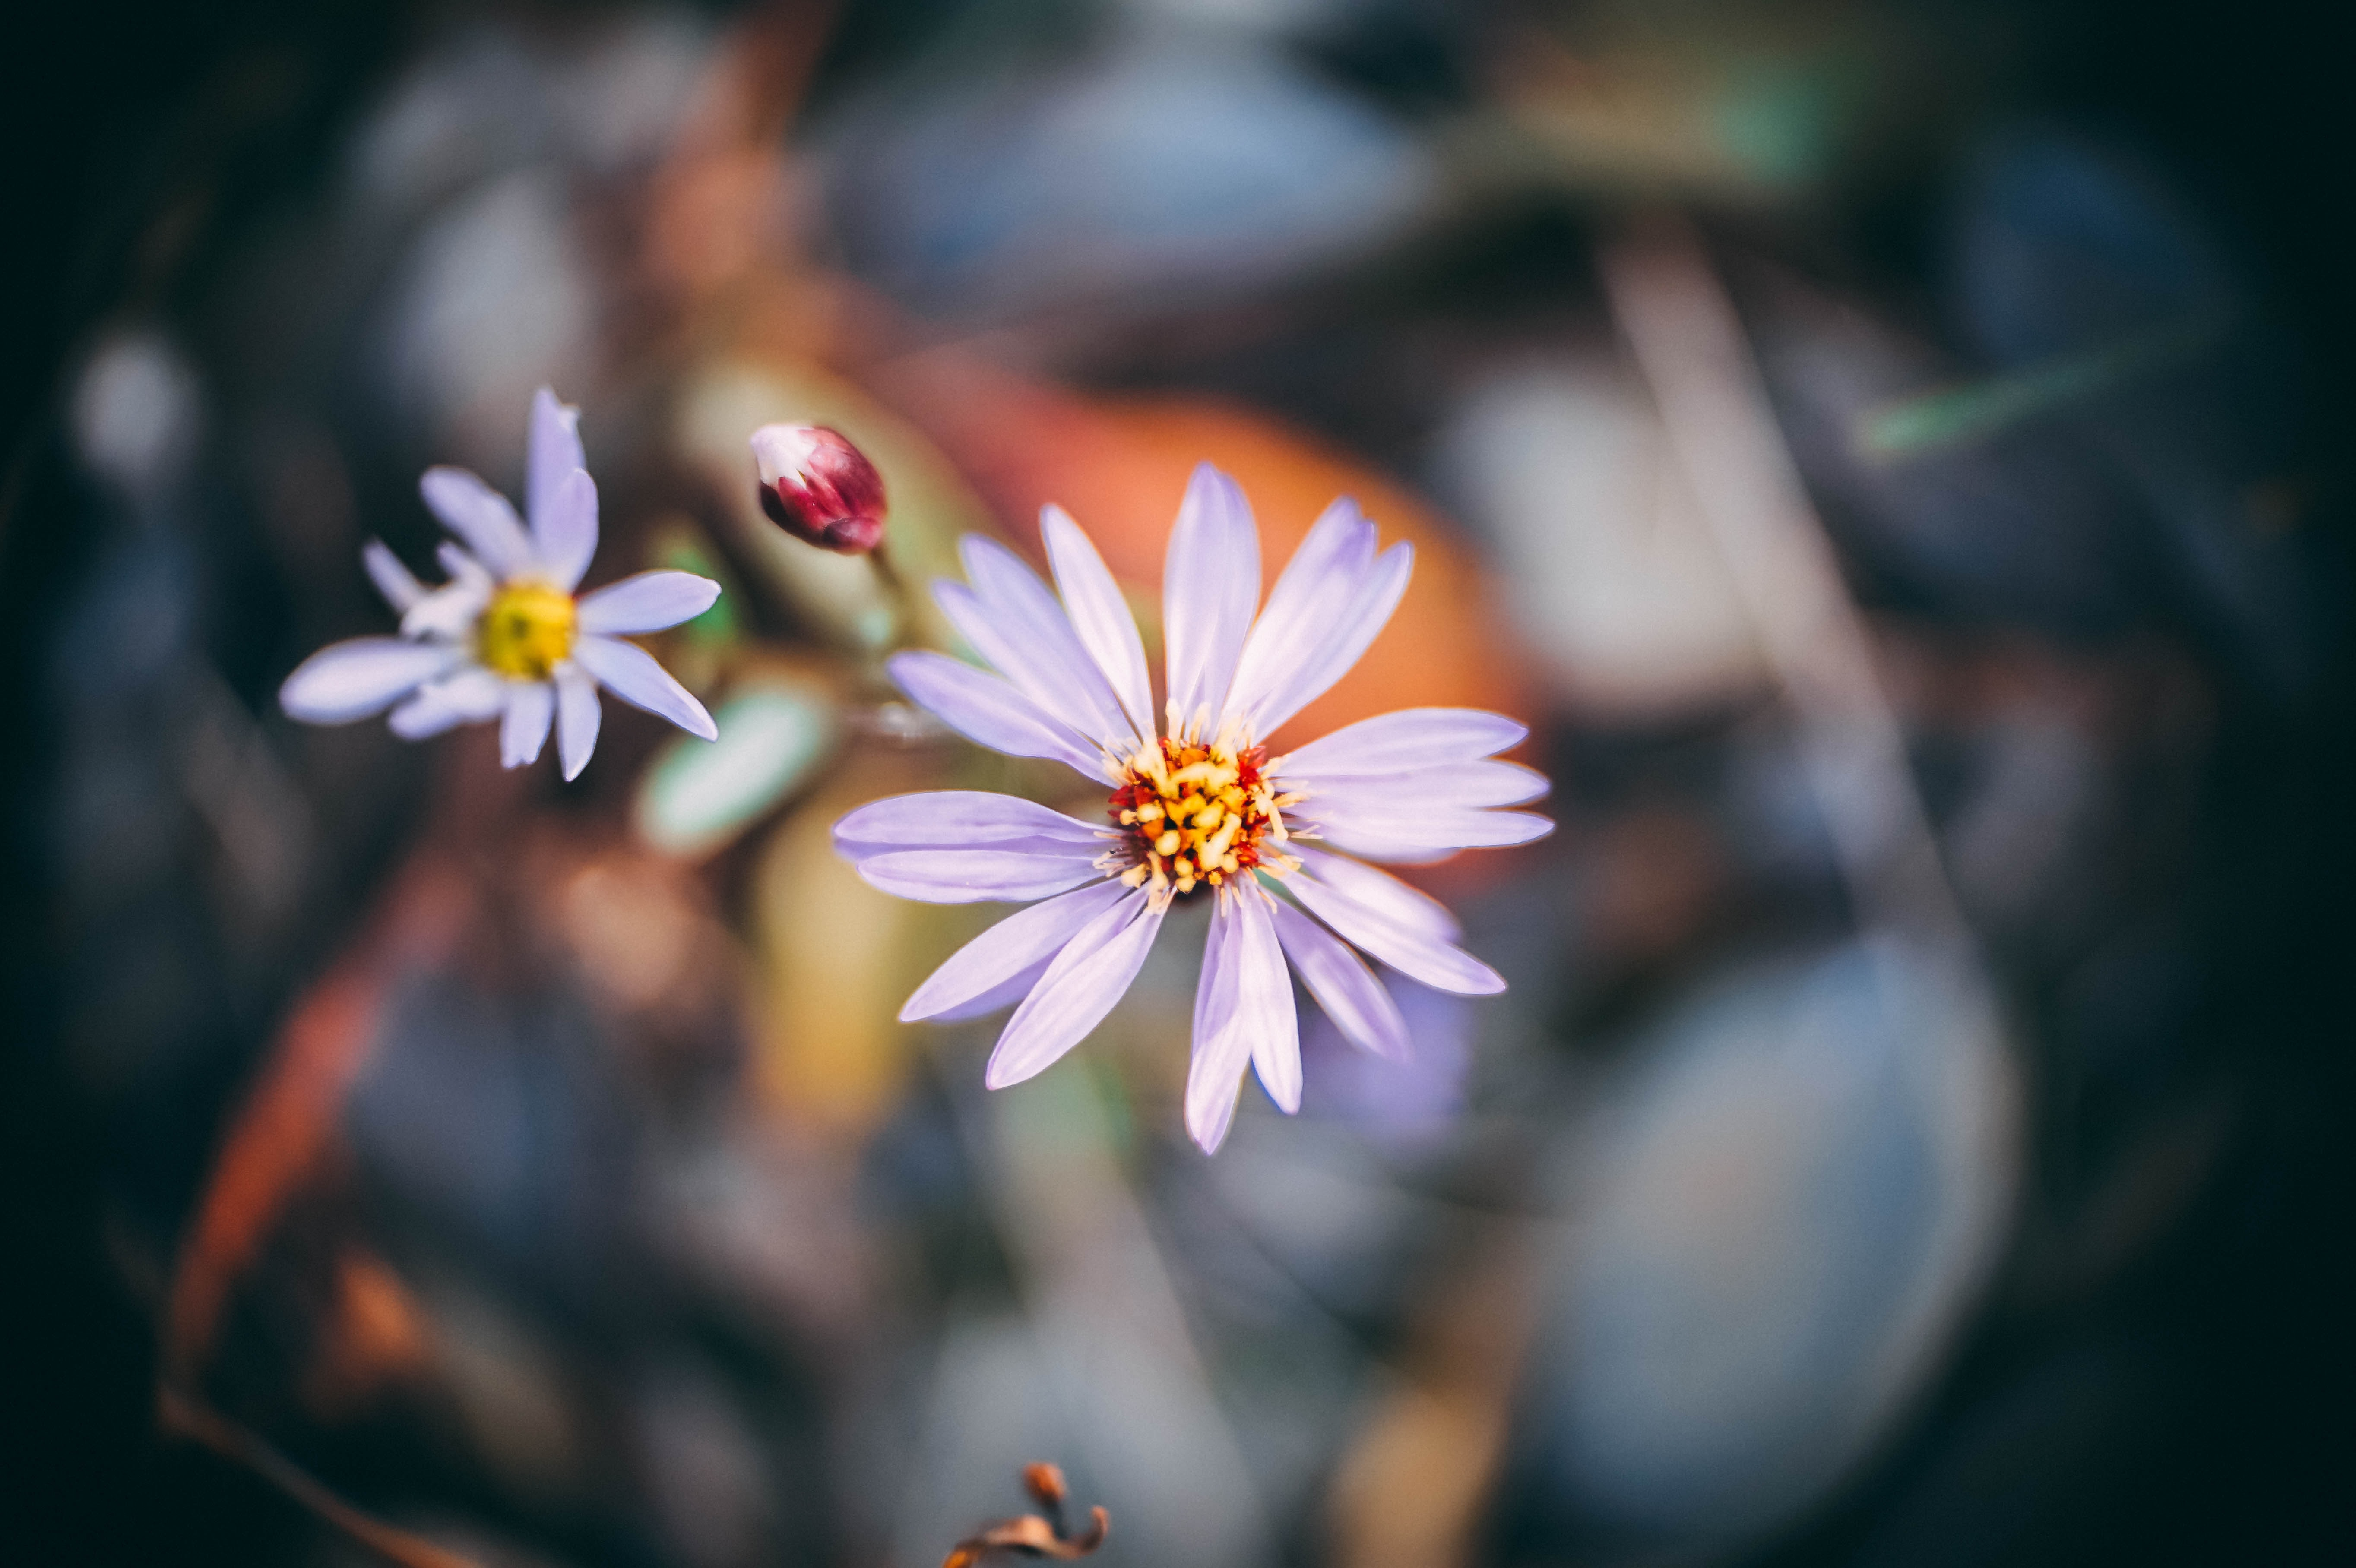 shallow focus photography of white daisies